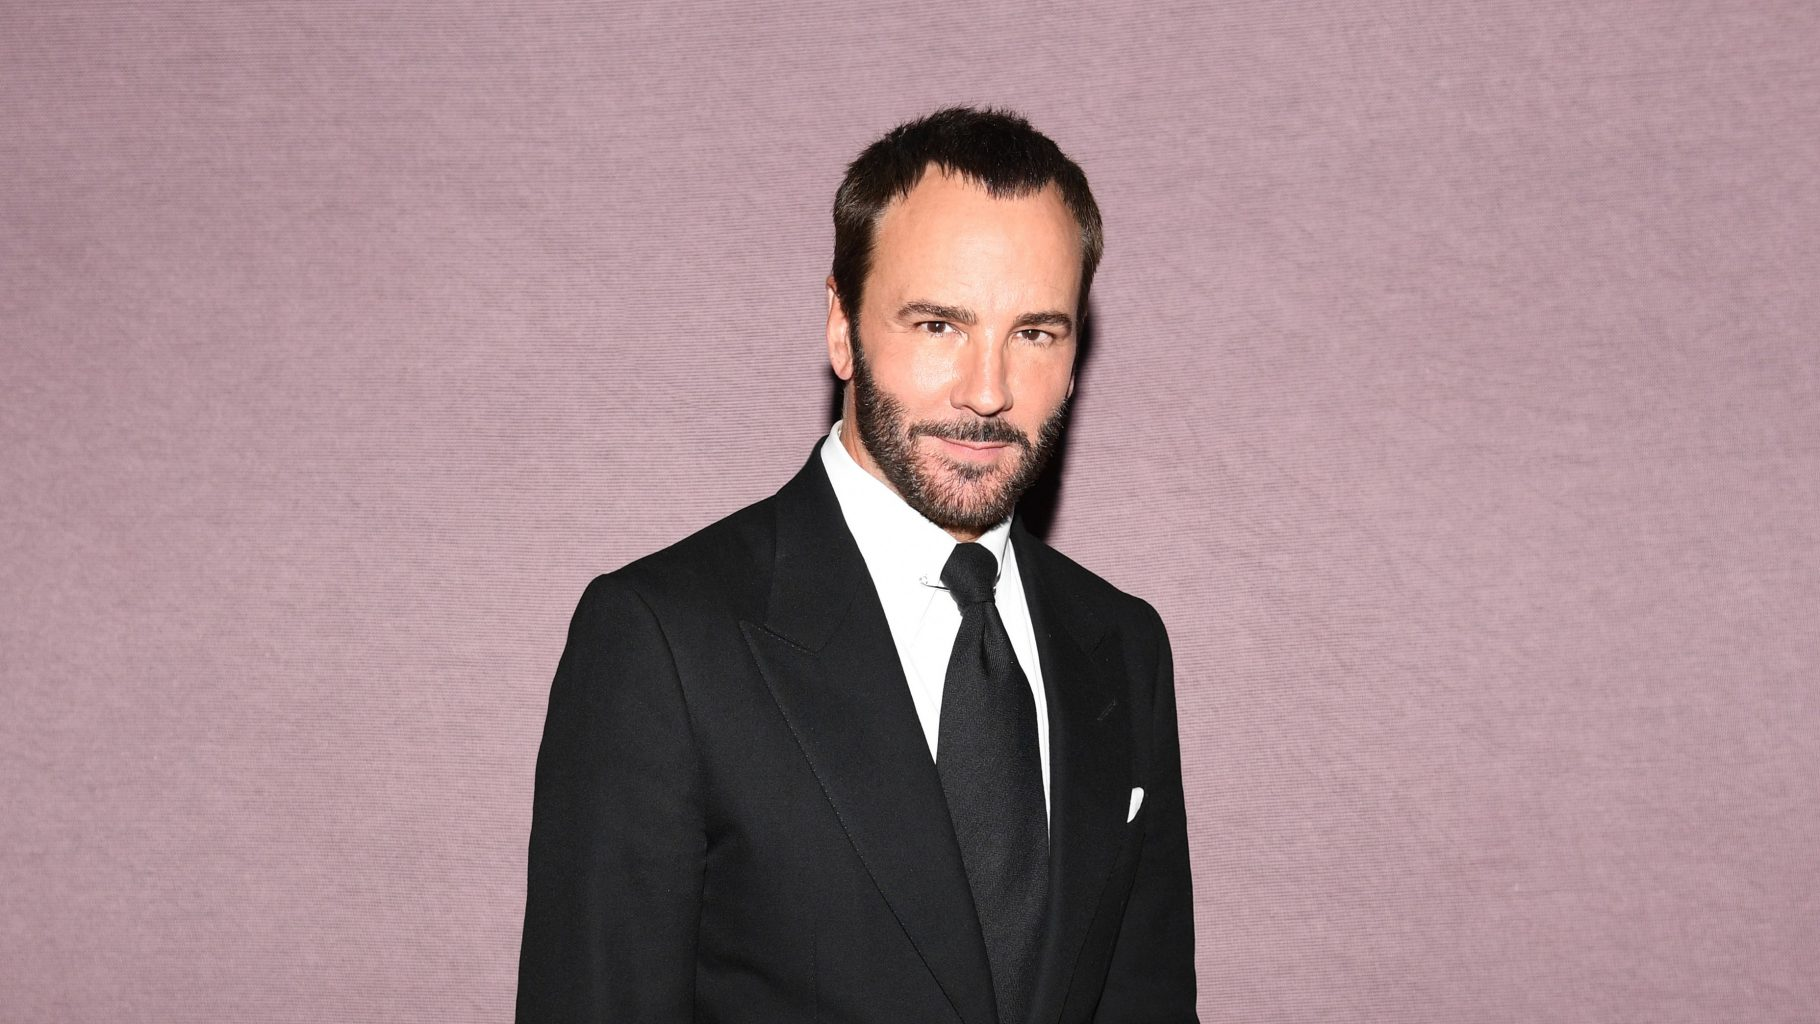 Tom Ford, designer and chairman of the Council of Fashion Designers (CFDA)